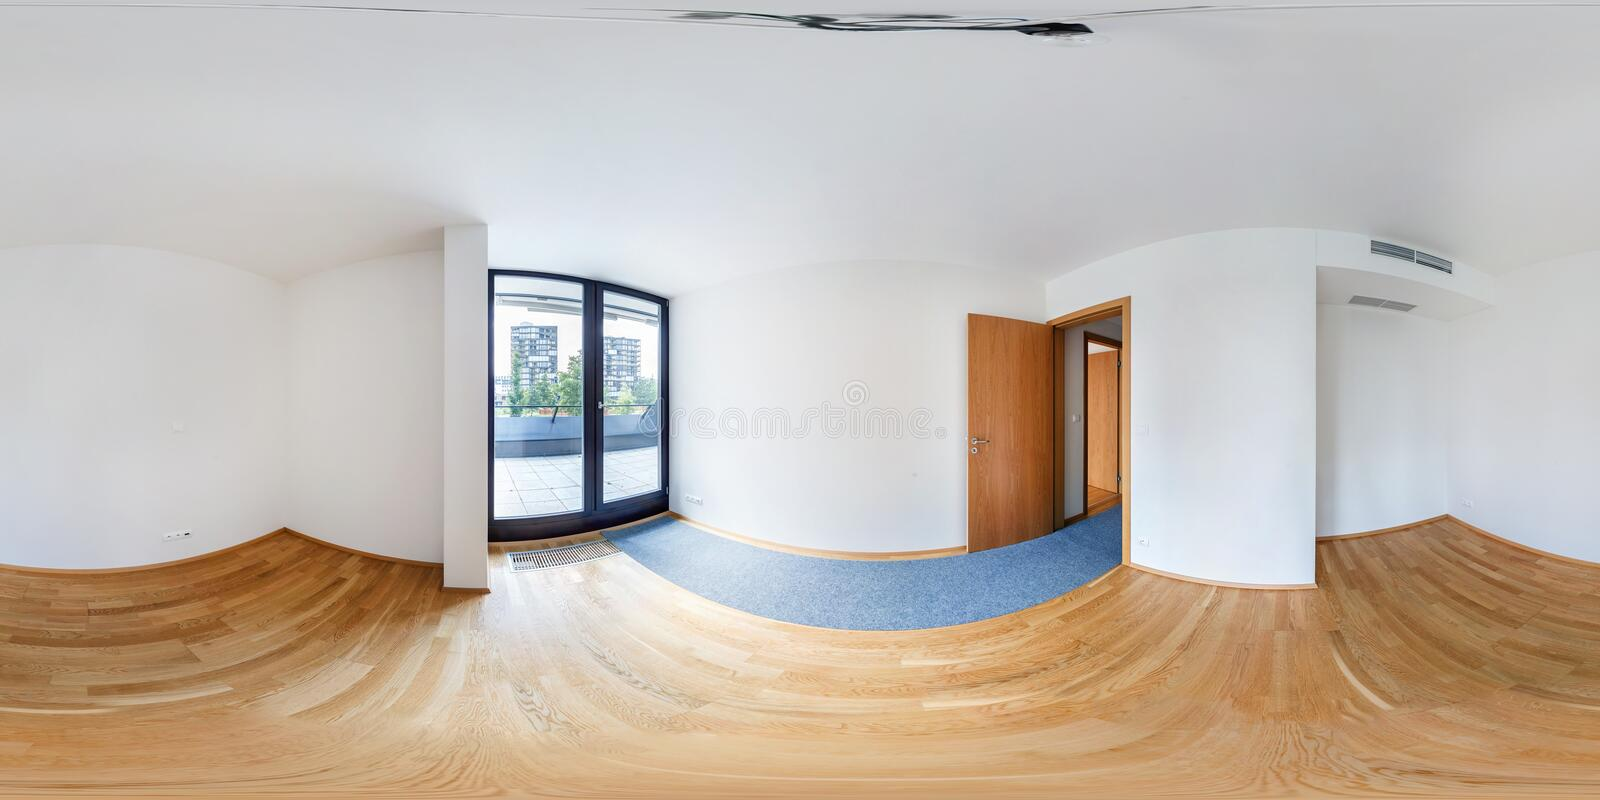 Panorama 360 view in modern white empty loft apartment interior of living room hall, full seamless 360 degrees angle view stock photo